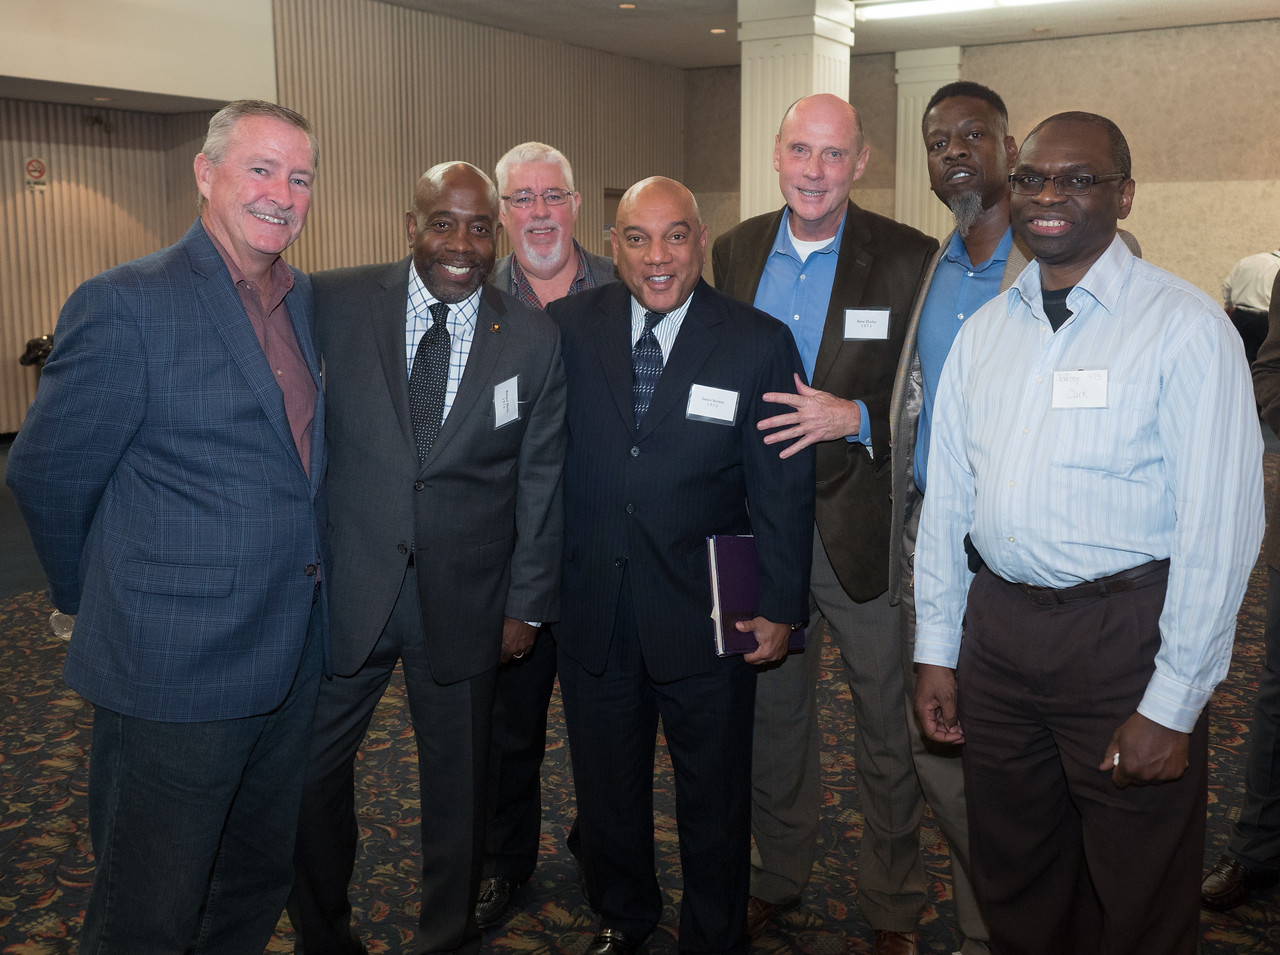 A group of Alumni with Honoree James A. Secreto, PMA 1975